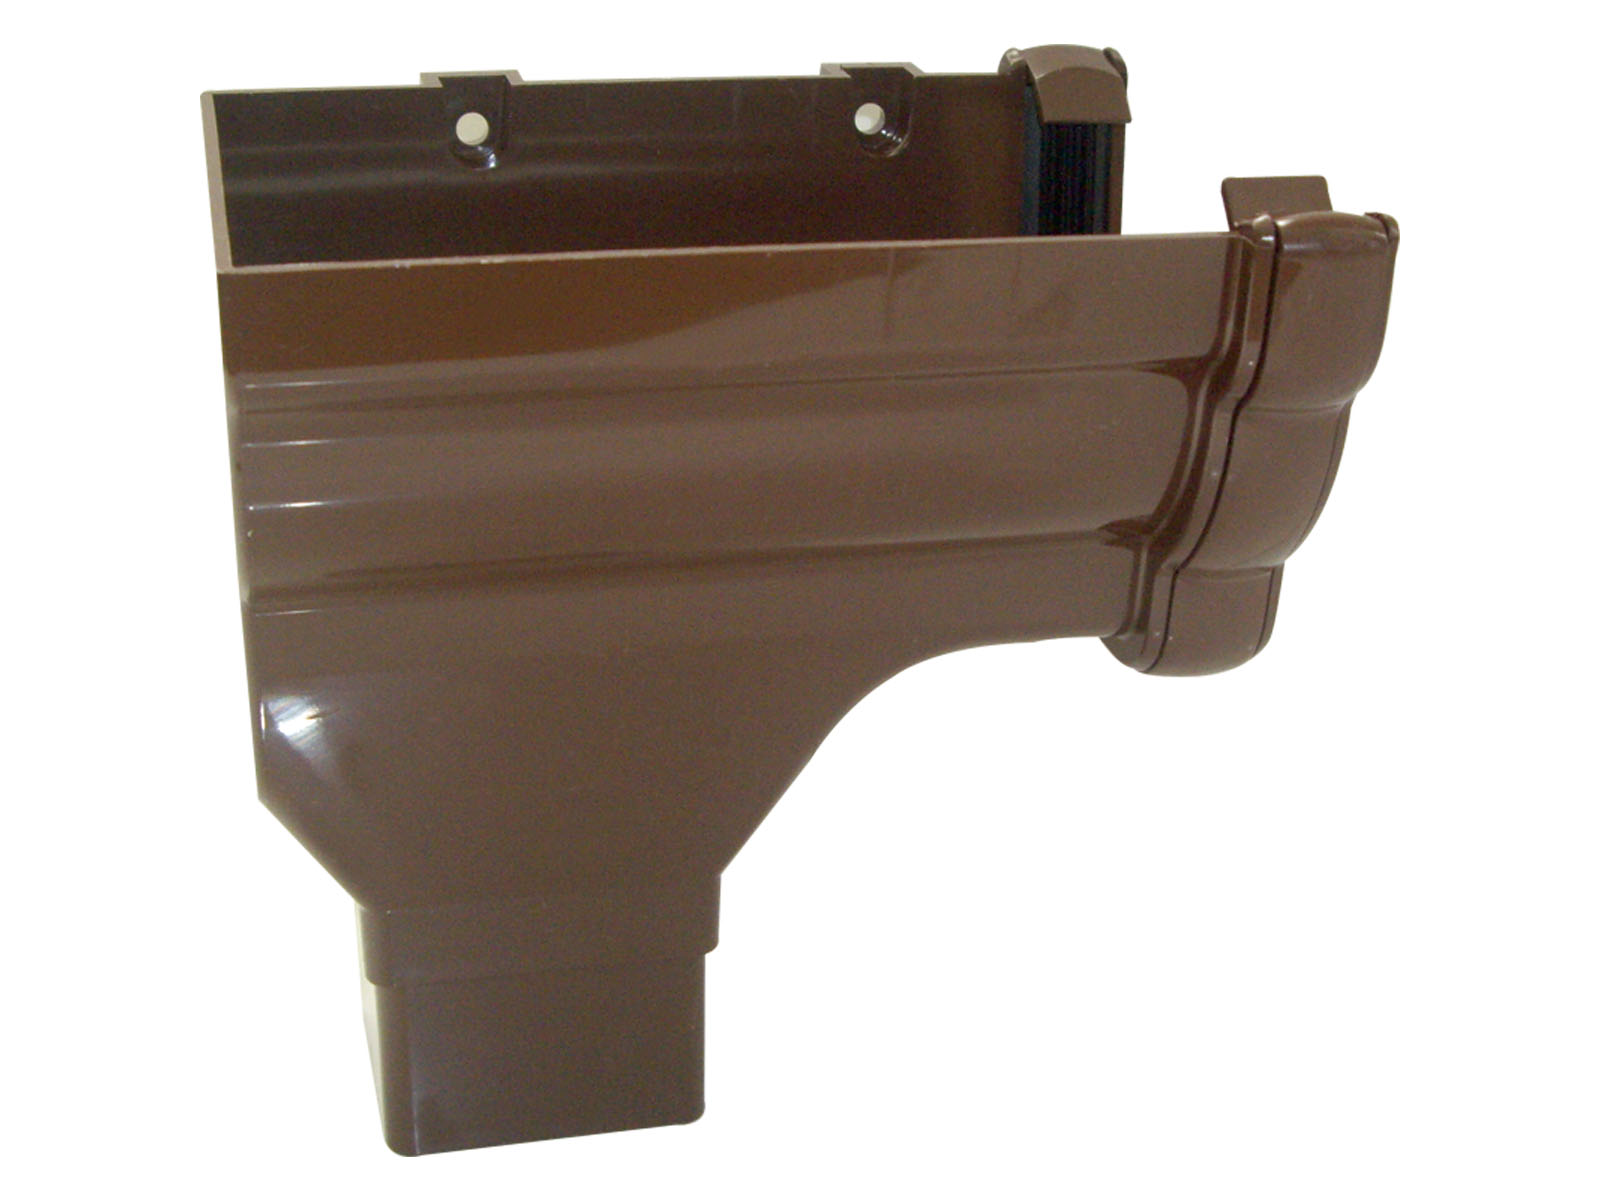 FLOPLAST NIAGARA - RON2 L/H STOPEND OUTLET - BROWN